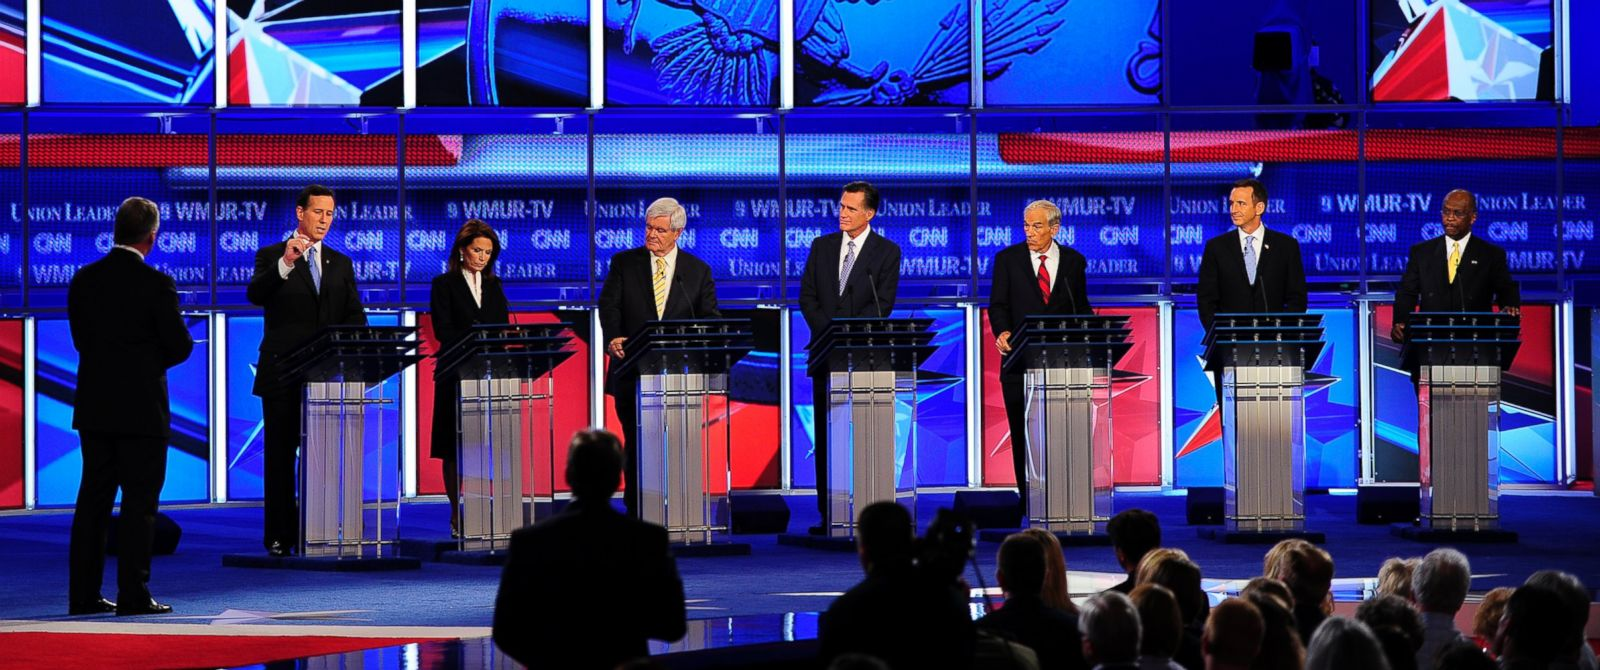 PHOTO: (L-R) Rick Santorum, Michele Bachmann, Newt Gingrich, Mitt Romney, Ron Paul, Tim Pawlenty, Herman Cain address the first 2012 Republican presidential candidates debate in Manchester, New Hampshire, June 13, 2011.